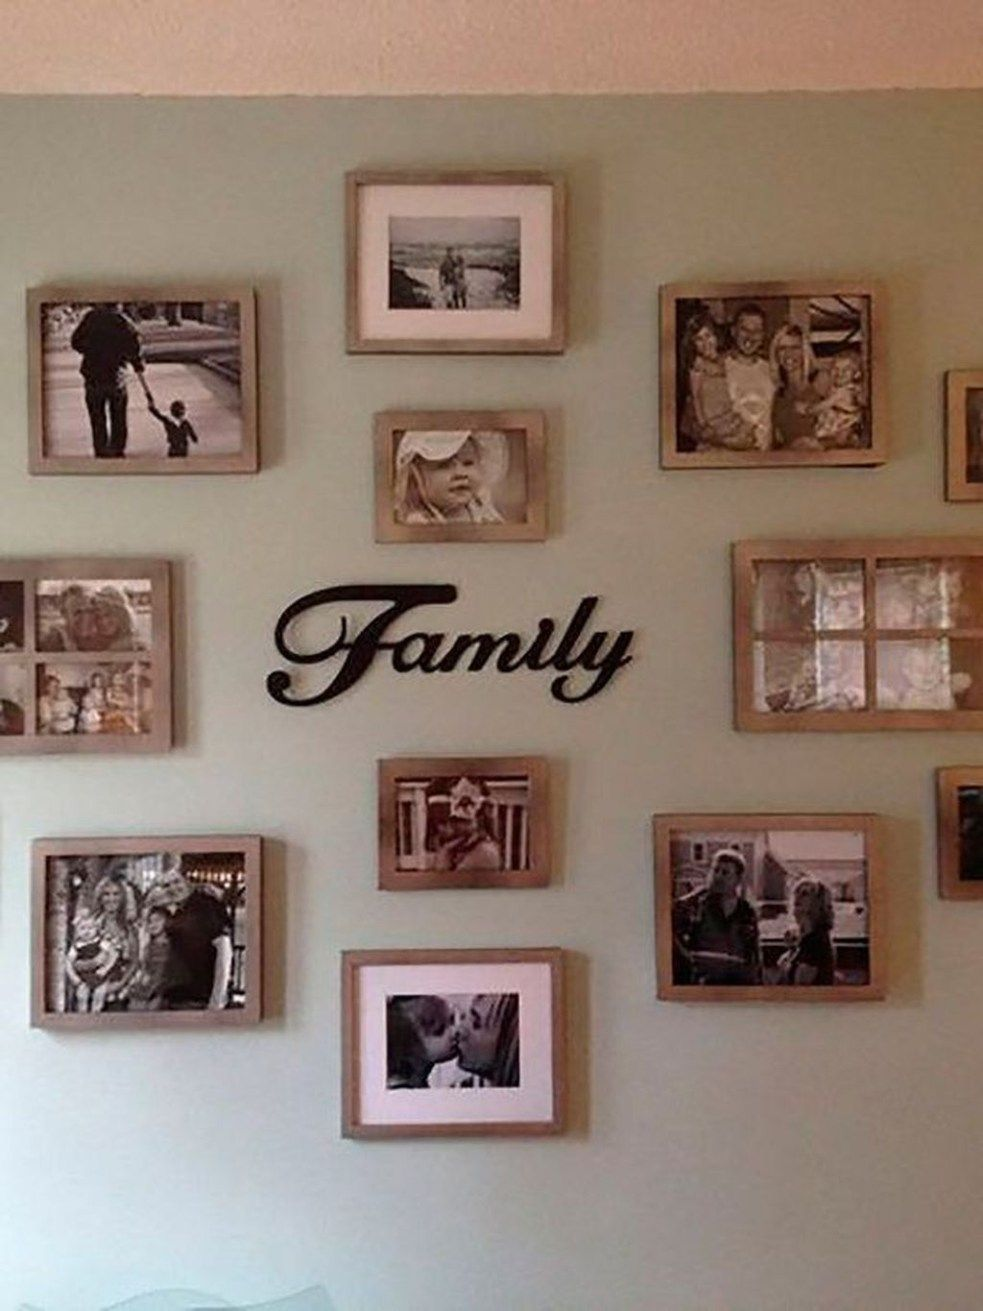 Amazing Living Room Wall Decor Ideas 34 Family Gallery Wall Family Pictures On Wall Easy Home Decor